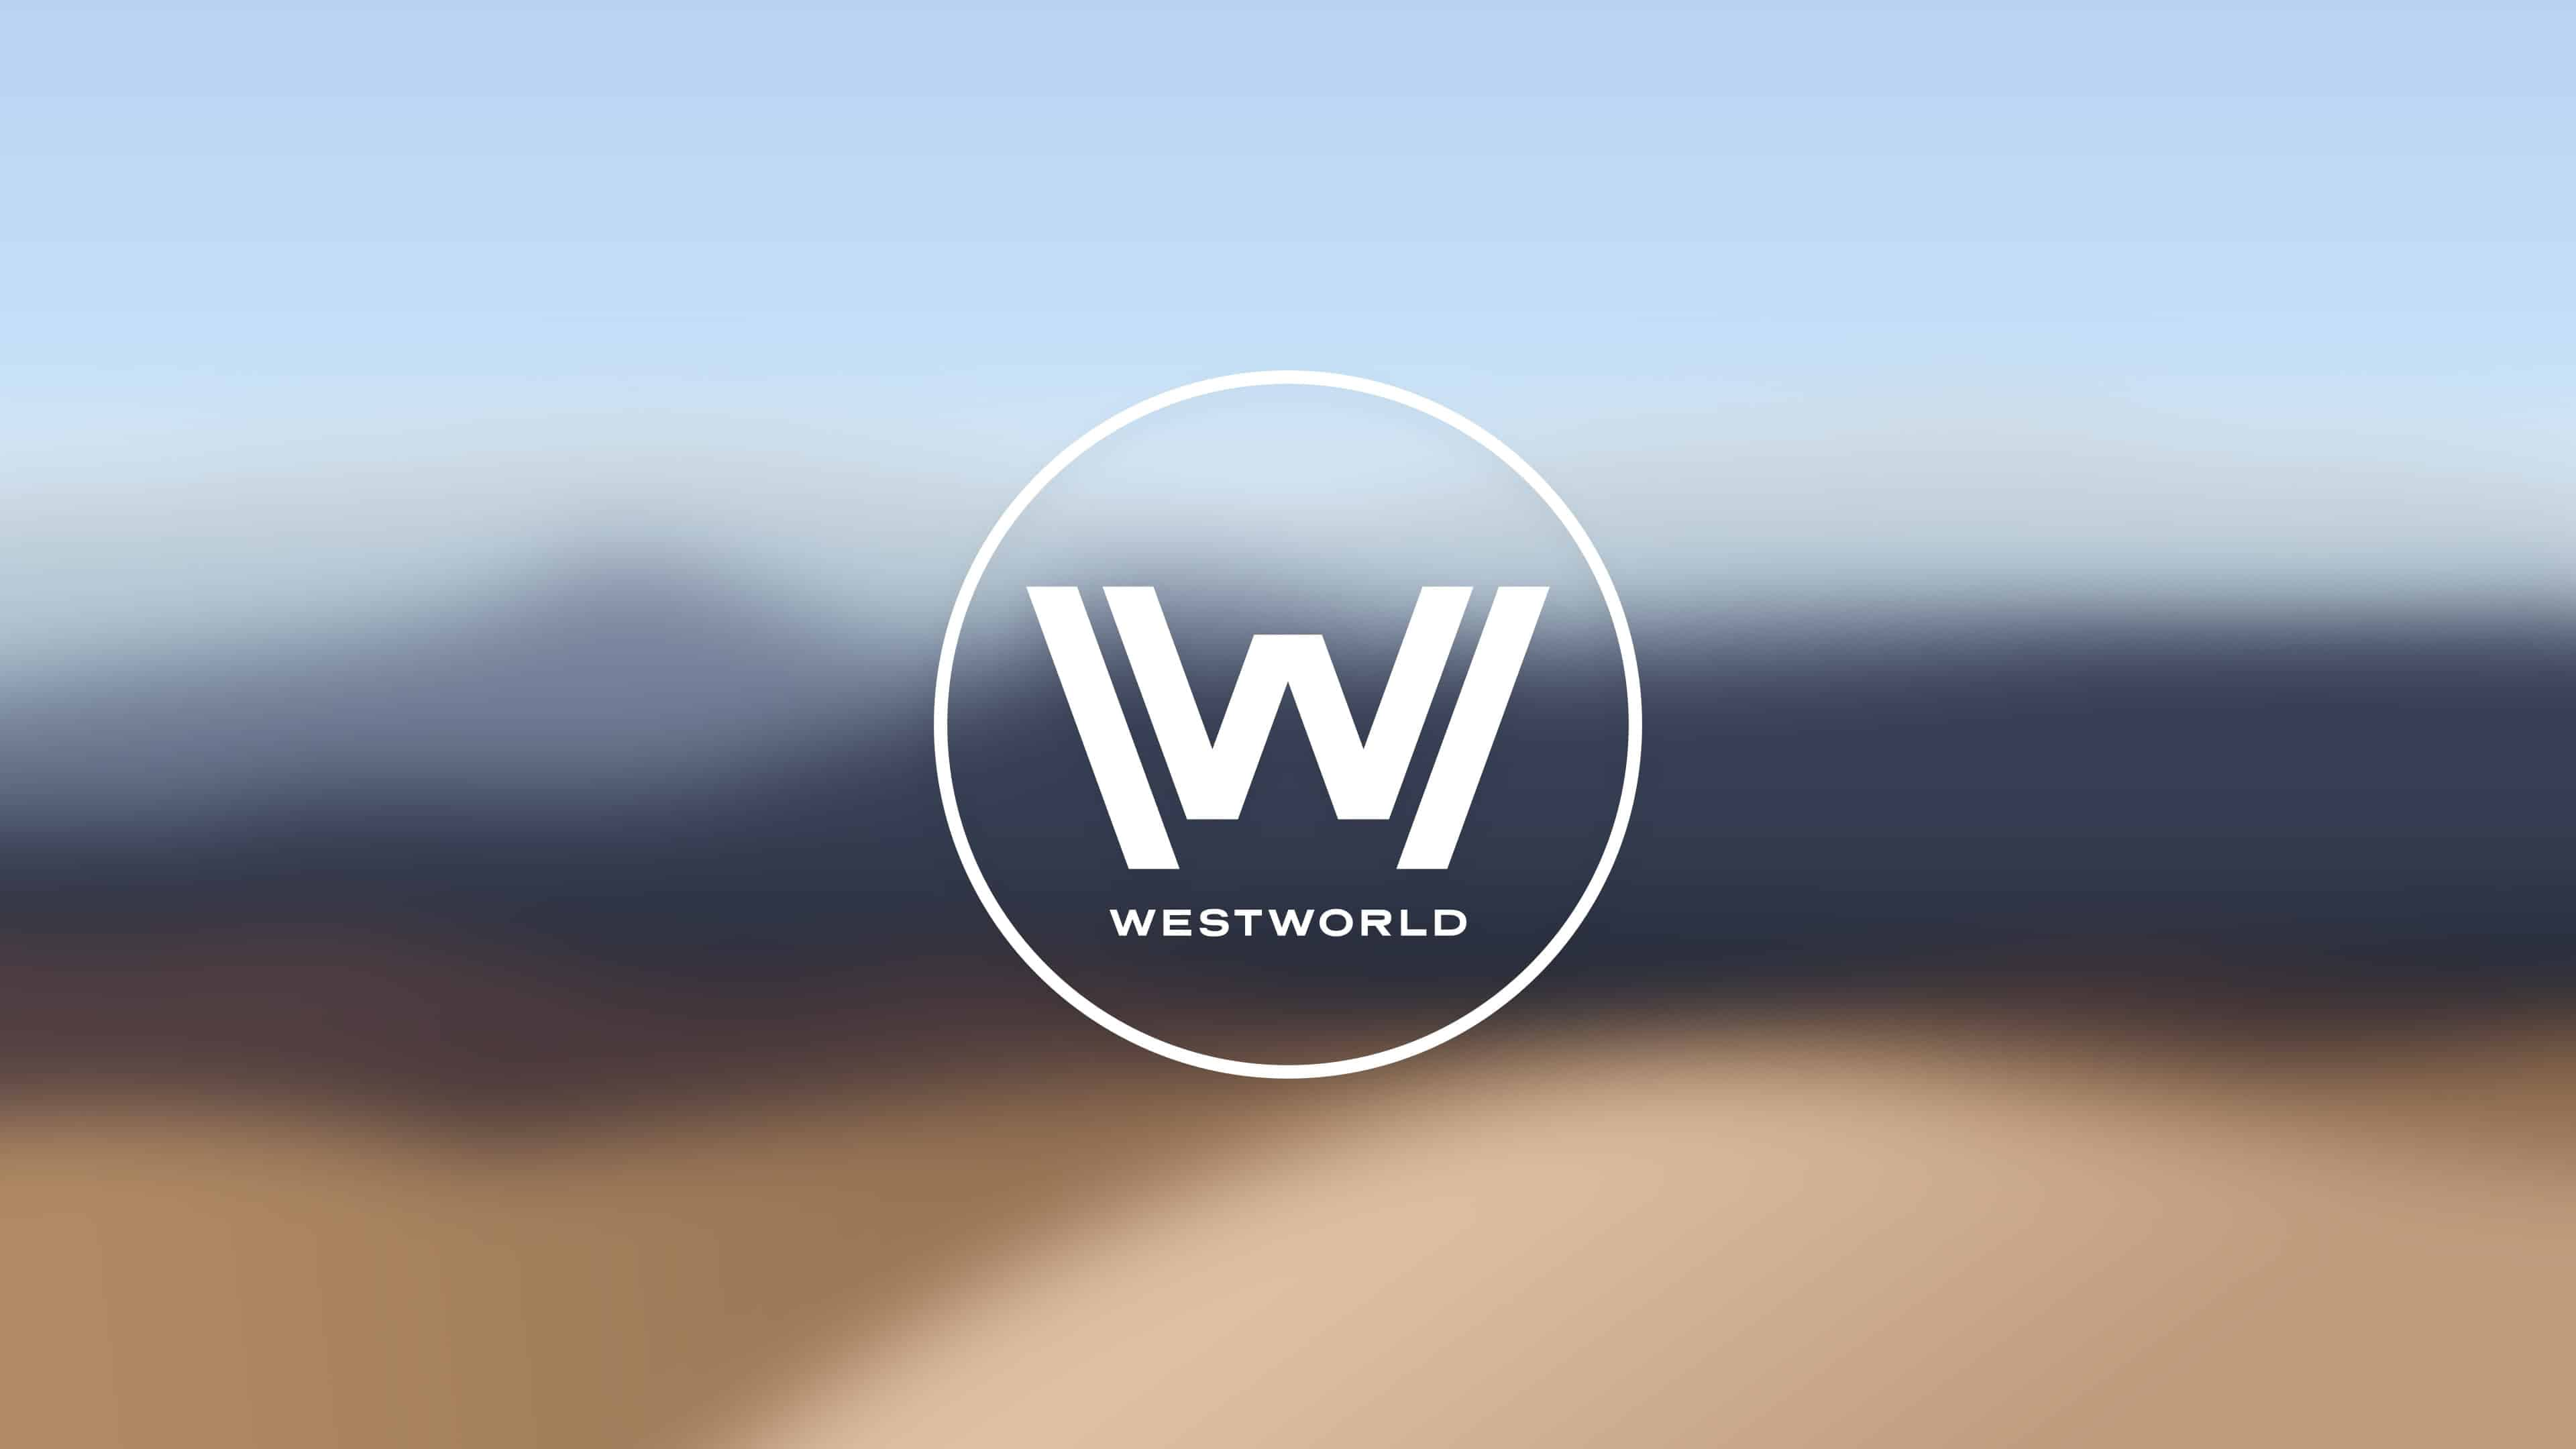 westworld logo uhd 4k wallpaper